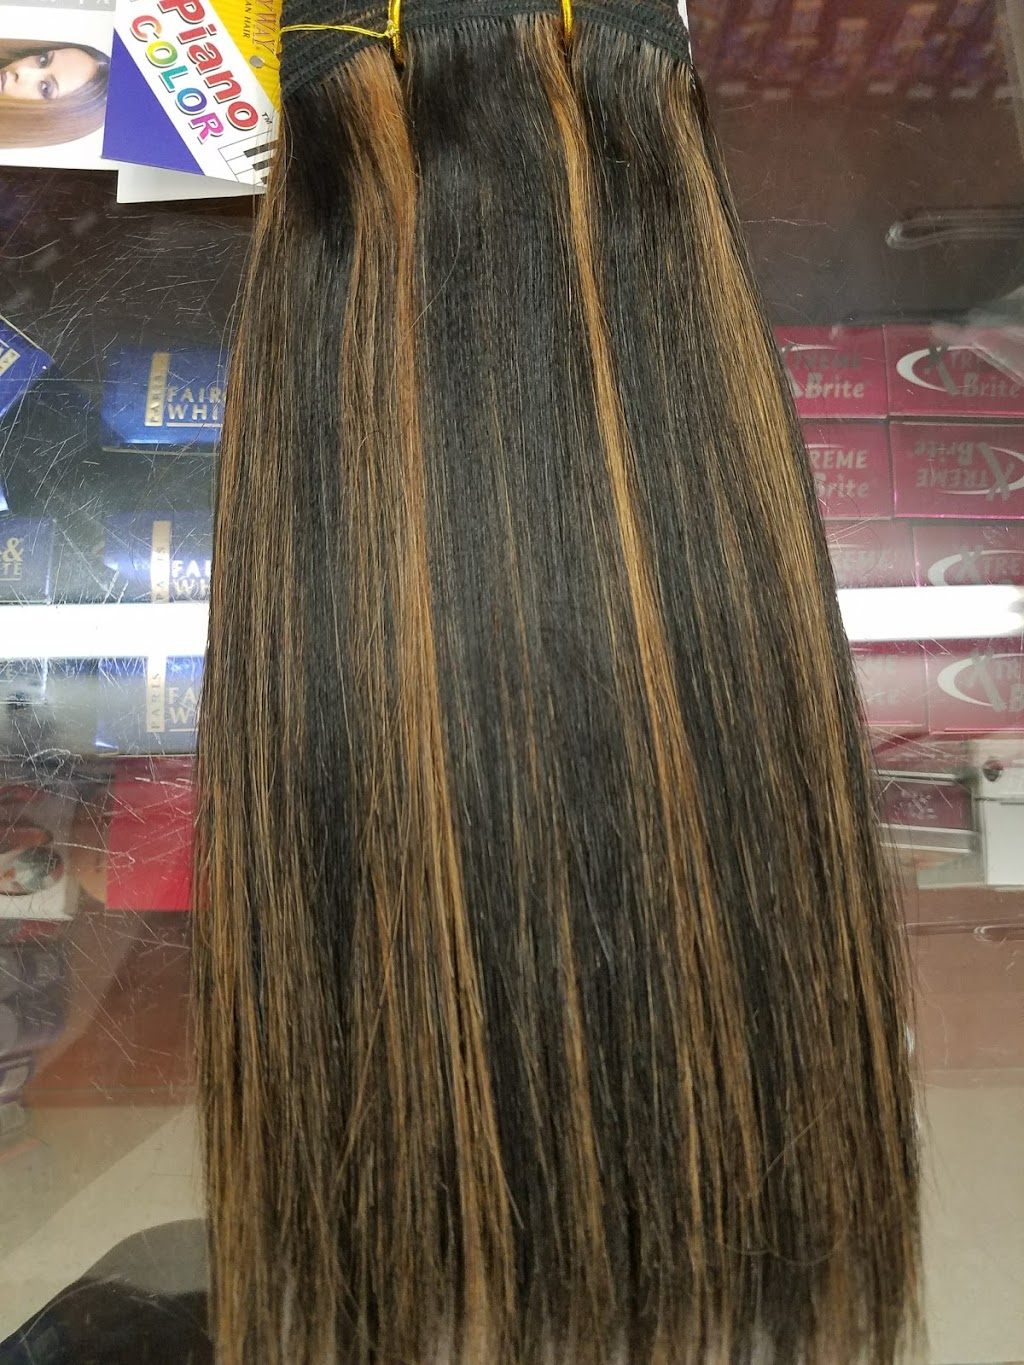 Elegant Beauty Supplies Superstores - hair care  | Photo 8 of 8 | Address: 2120 W Colonial Dr, Orlando, FL 32804, USA | Phone: (407) 426-3033